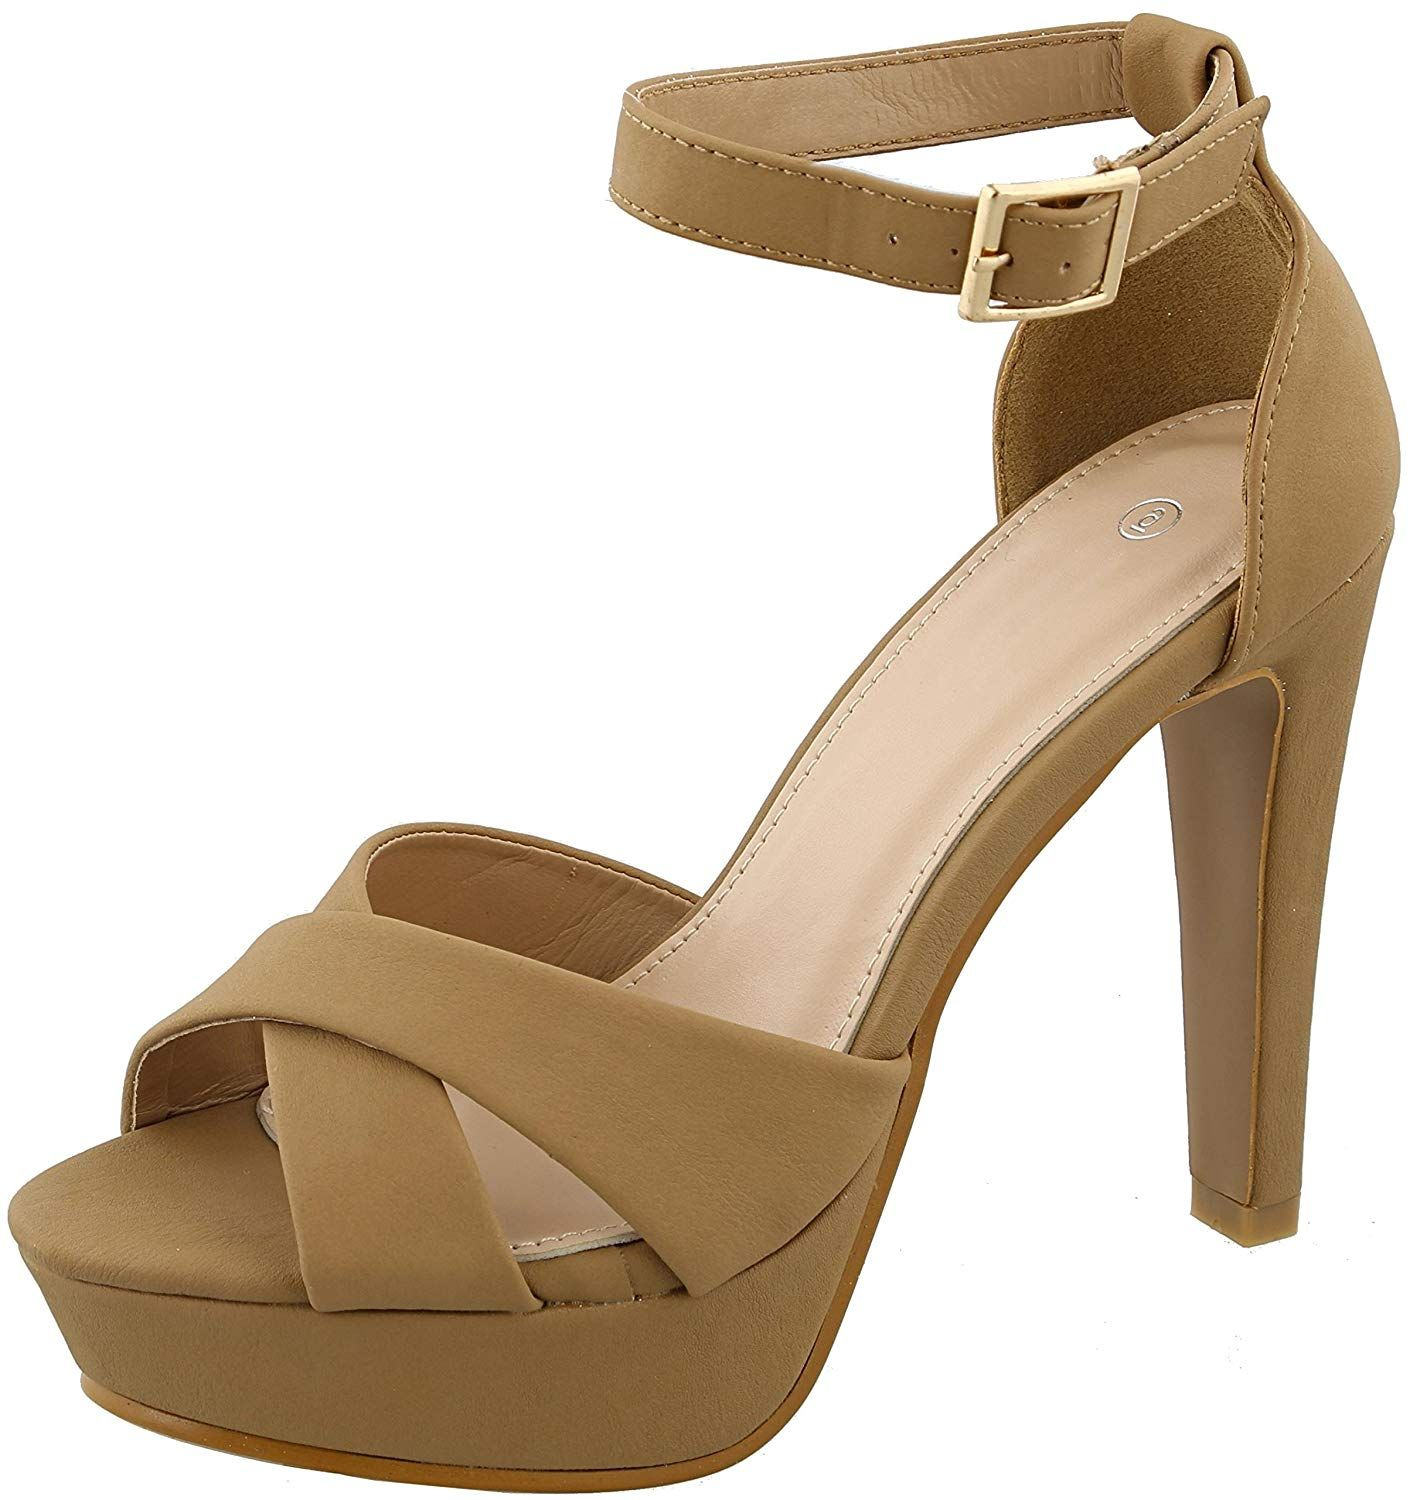 6153cebce04e Cambridge Select Women s Peep Toe Crisscross Buckled Ankle Strappy Chunky  Platform Tapered High Heel Sandal.